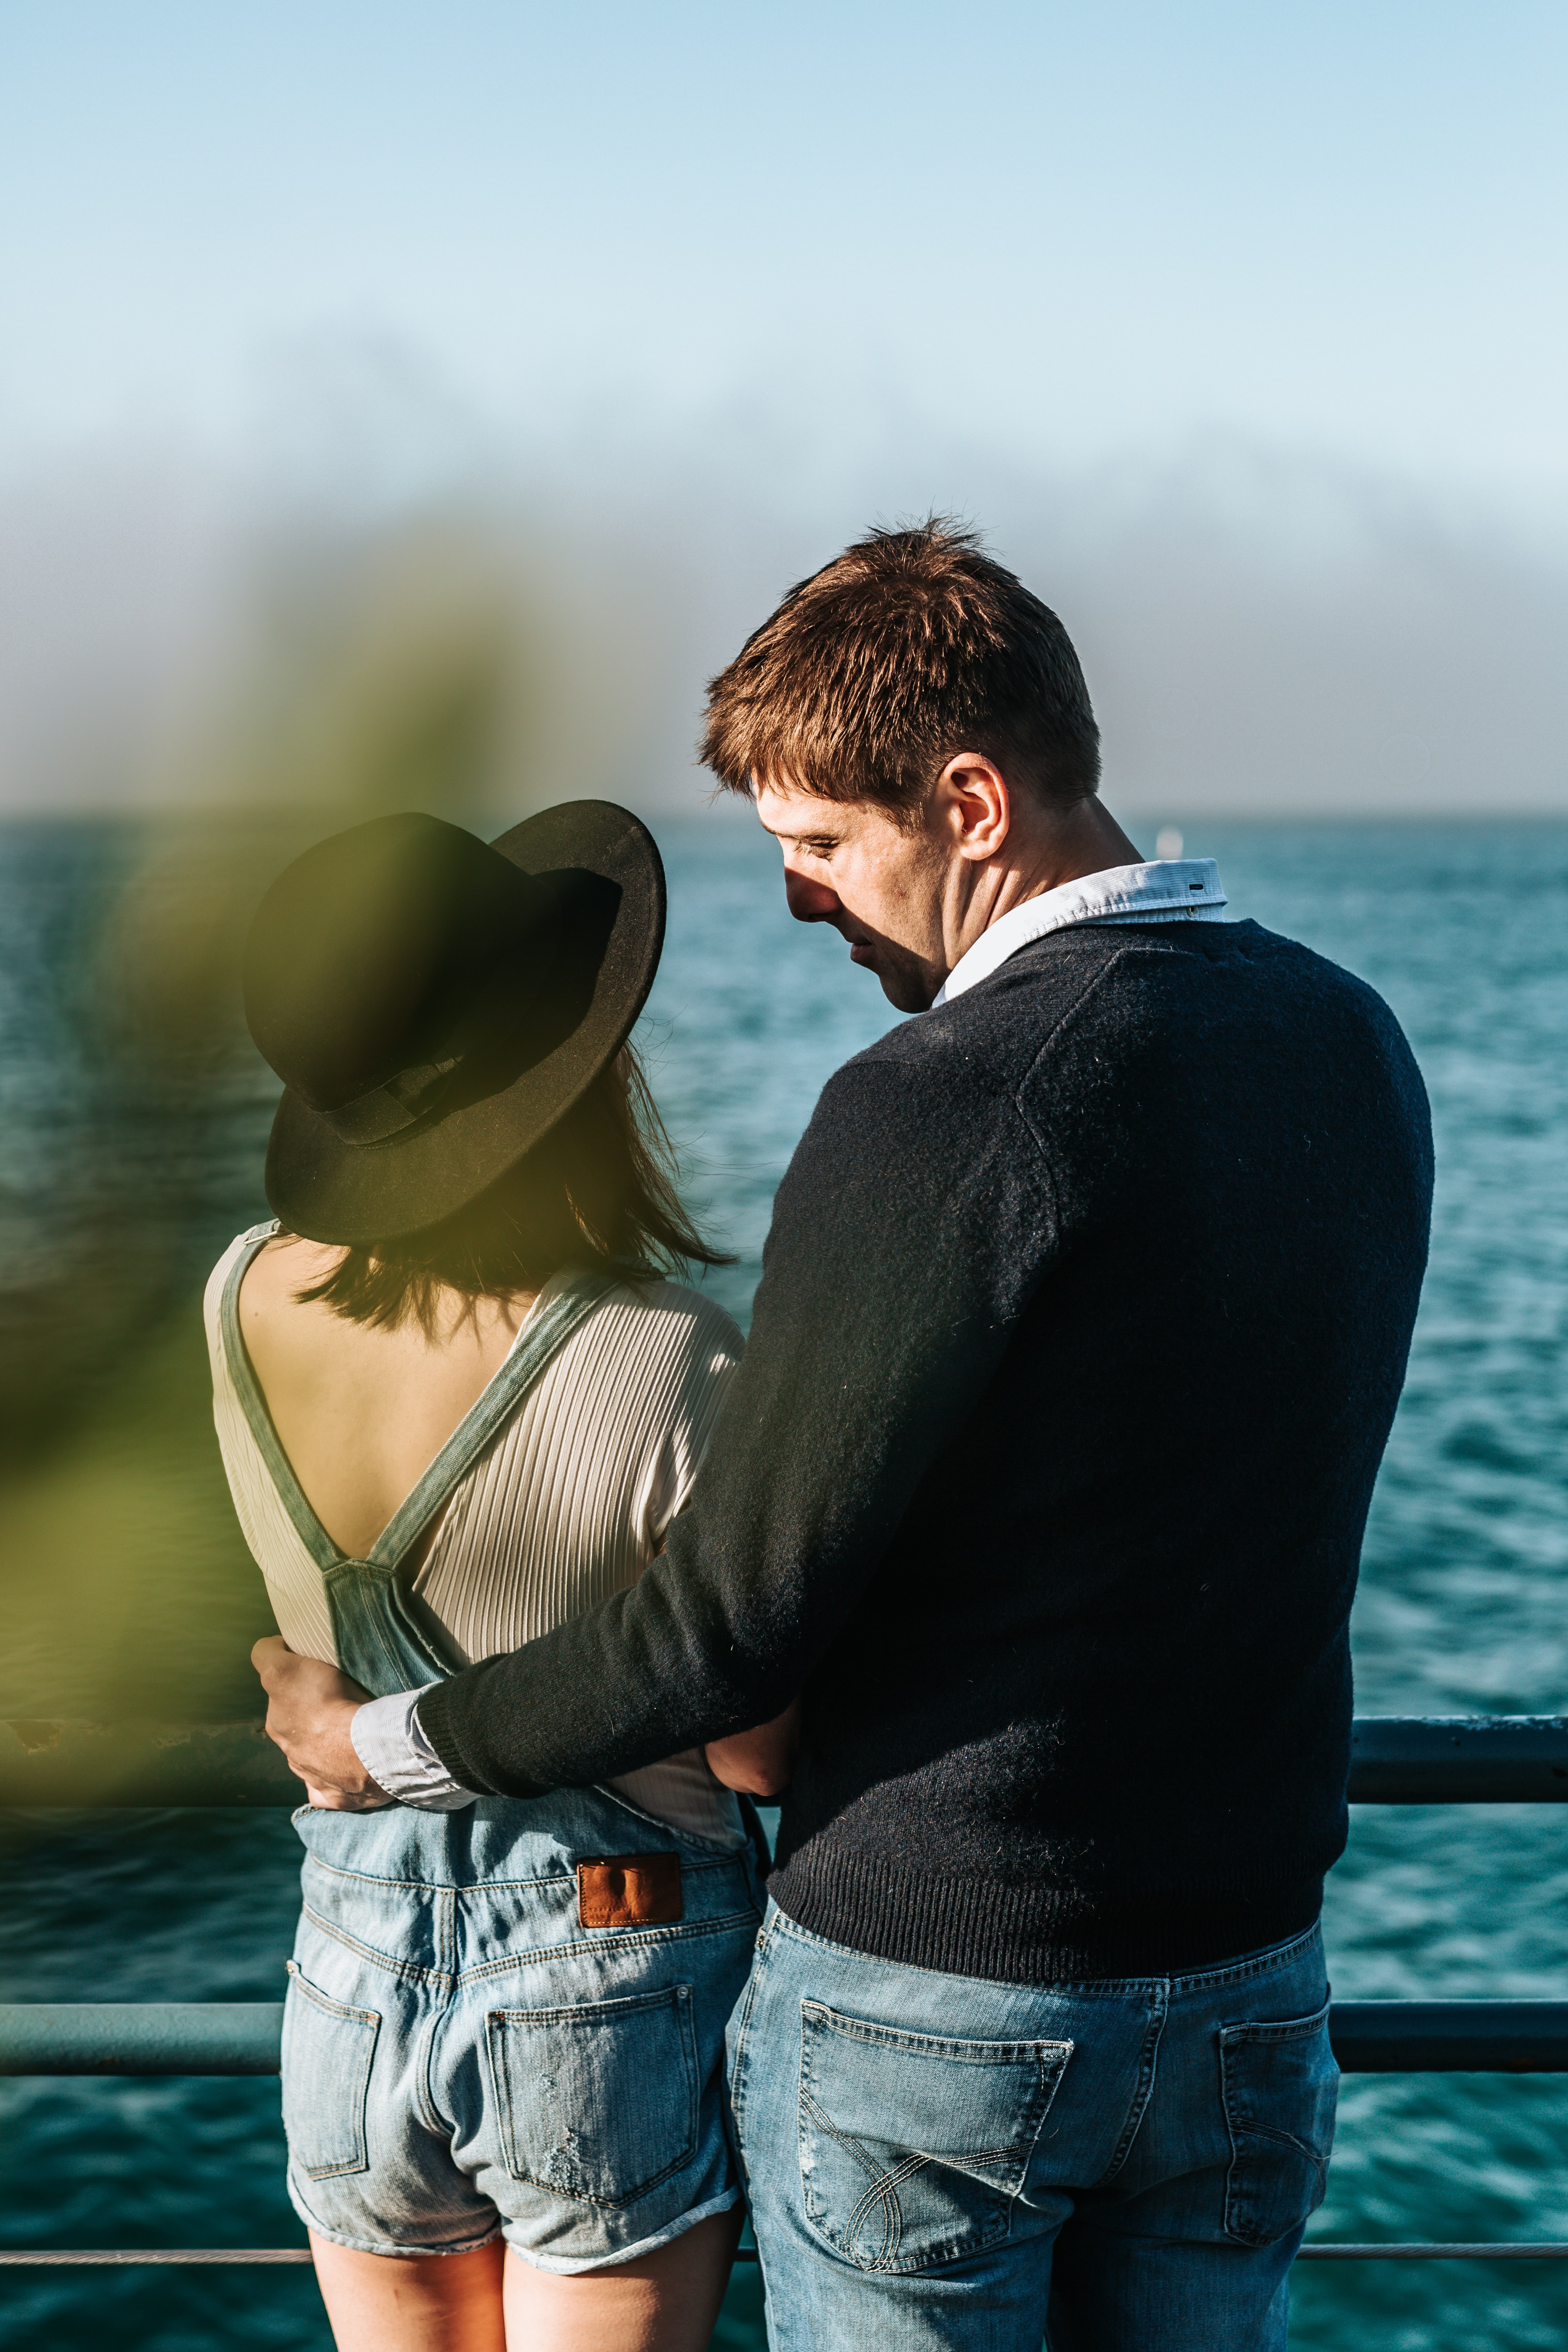 man and woman standing beside metal rail near body of water